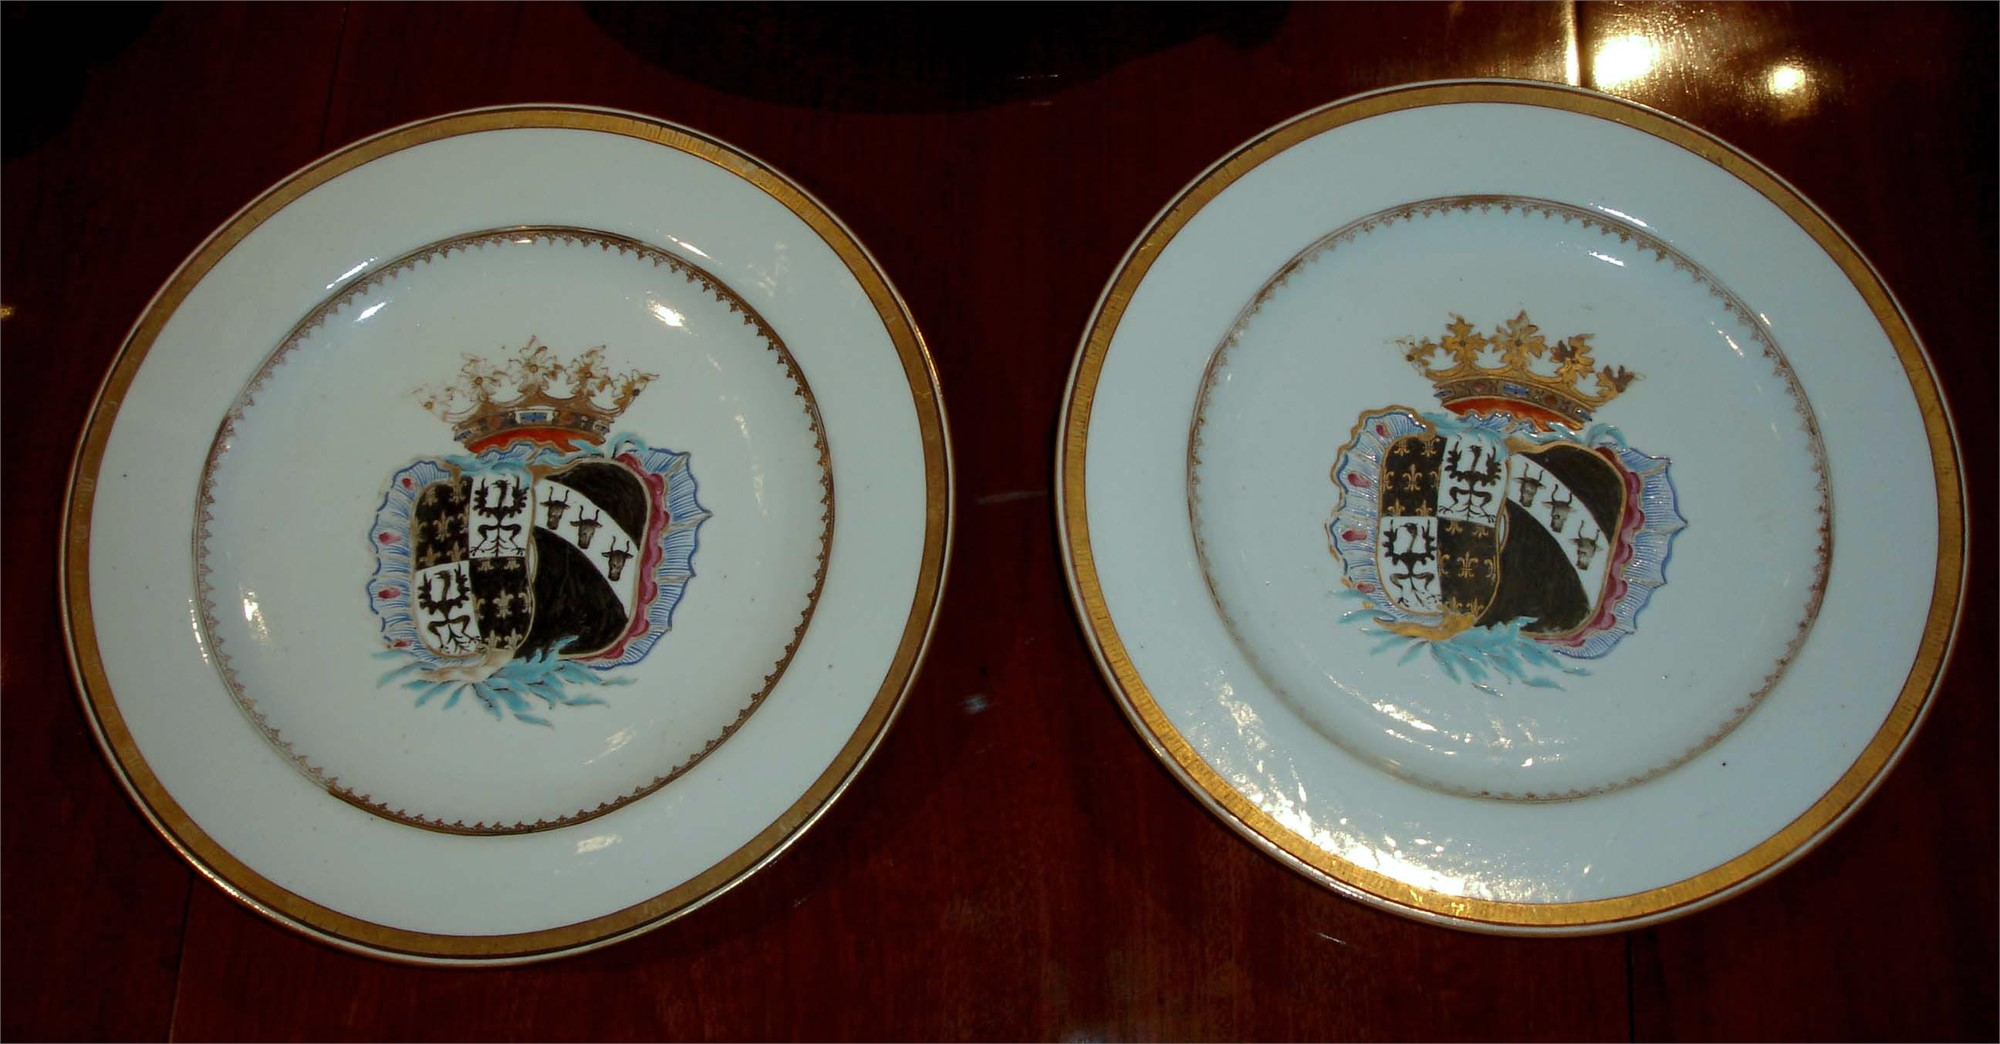 FOUR ARMORIAL DISHES WITH ARMS OF DE FAMARS AND VRIESEN